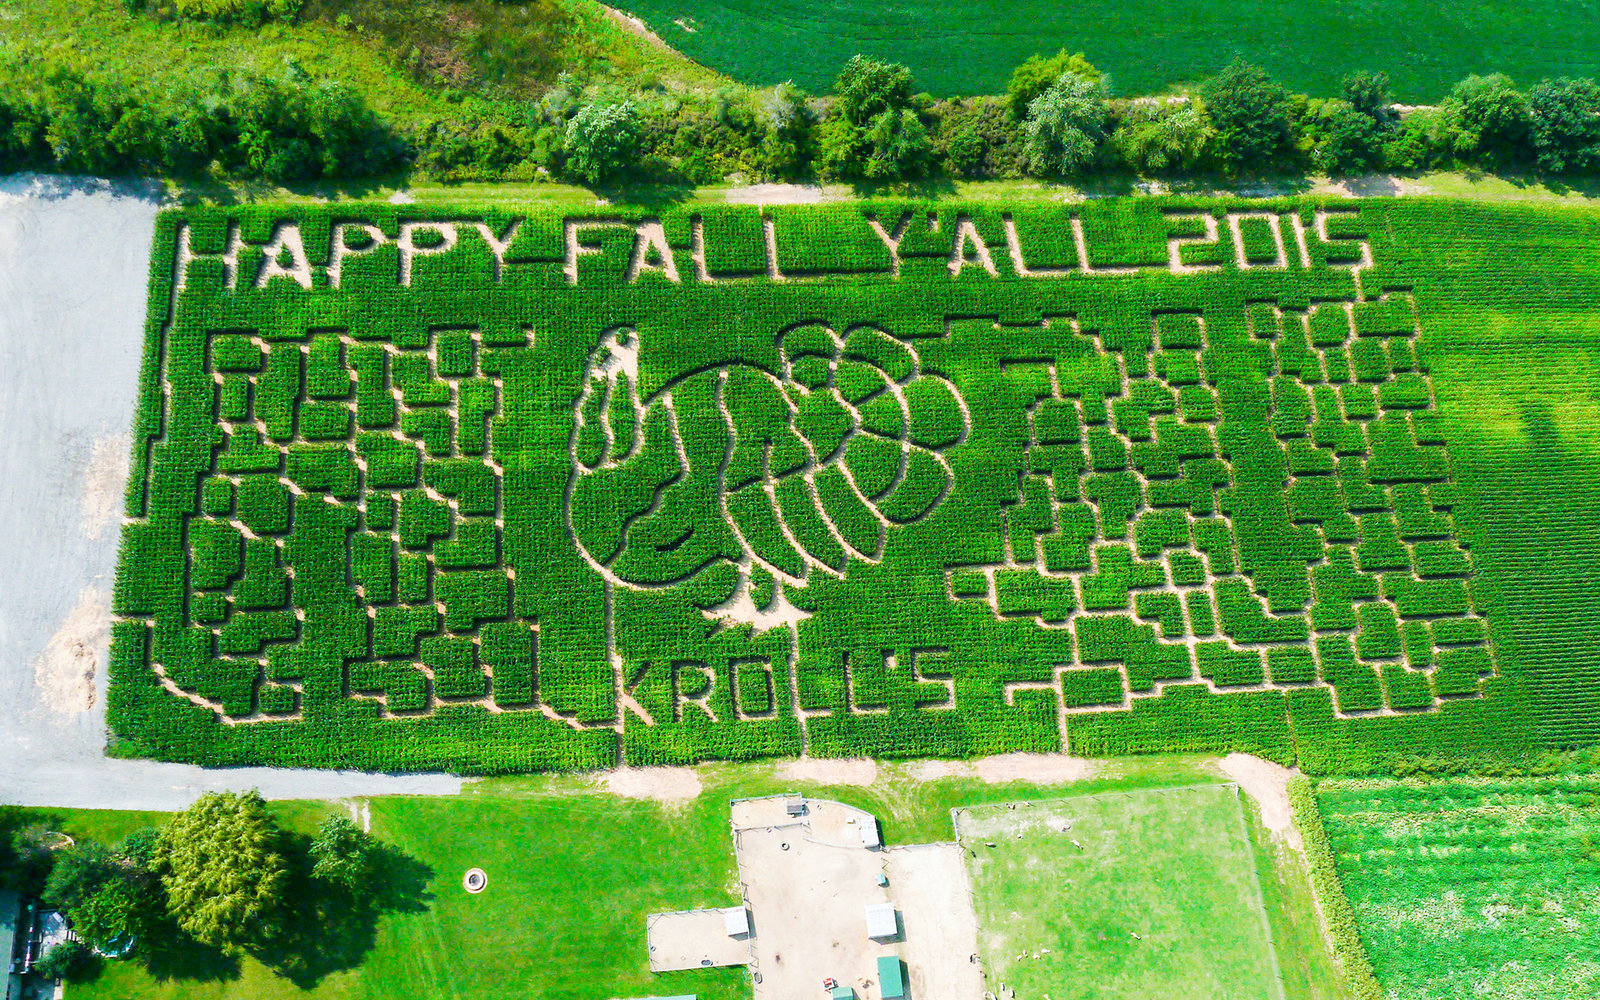 Kroll's Fall Harvest Pumpkin Farm